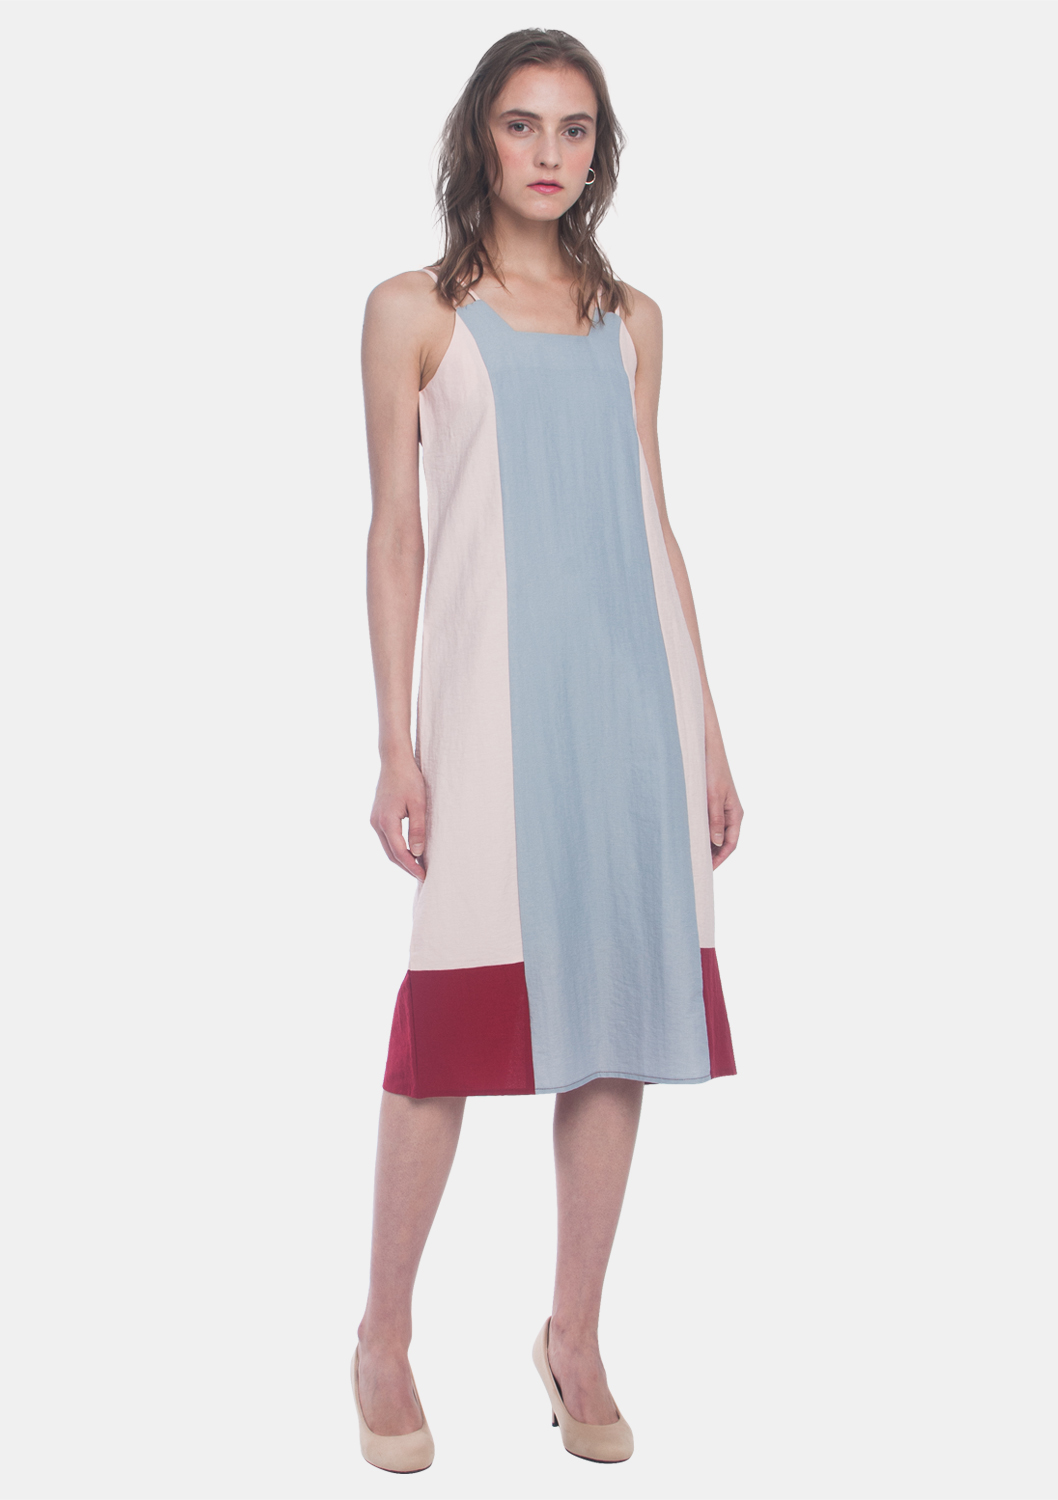 Clothing Ladies Online Shopping Online Dresses Shopping Singapore Dresses Online Shopping